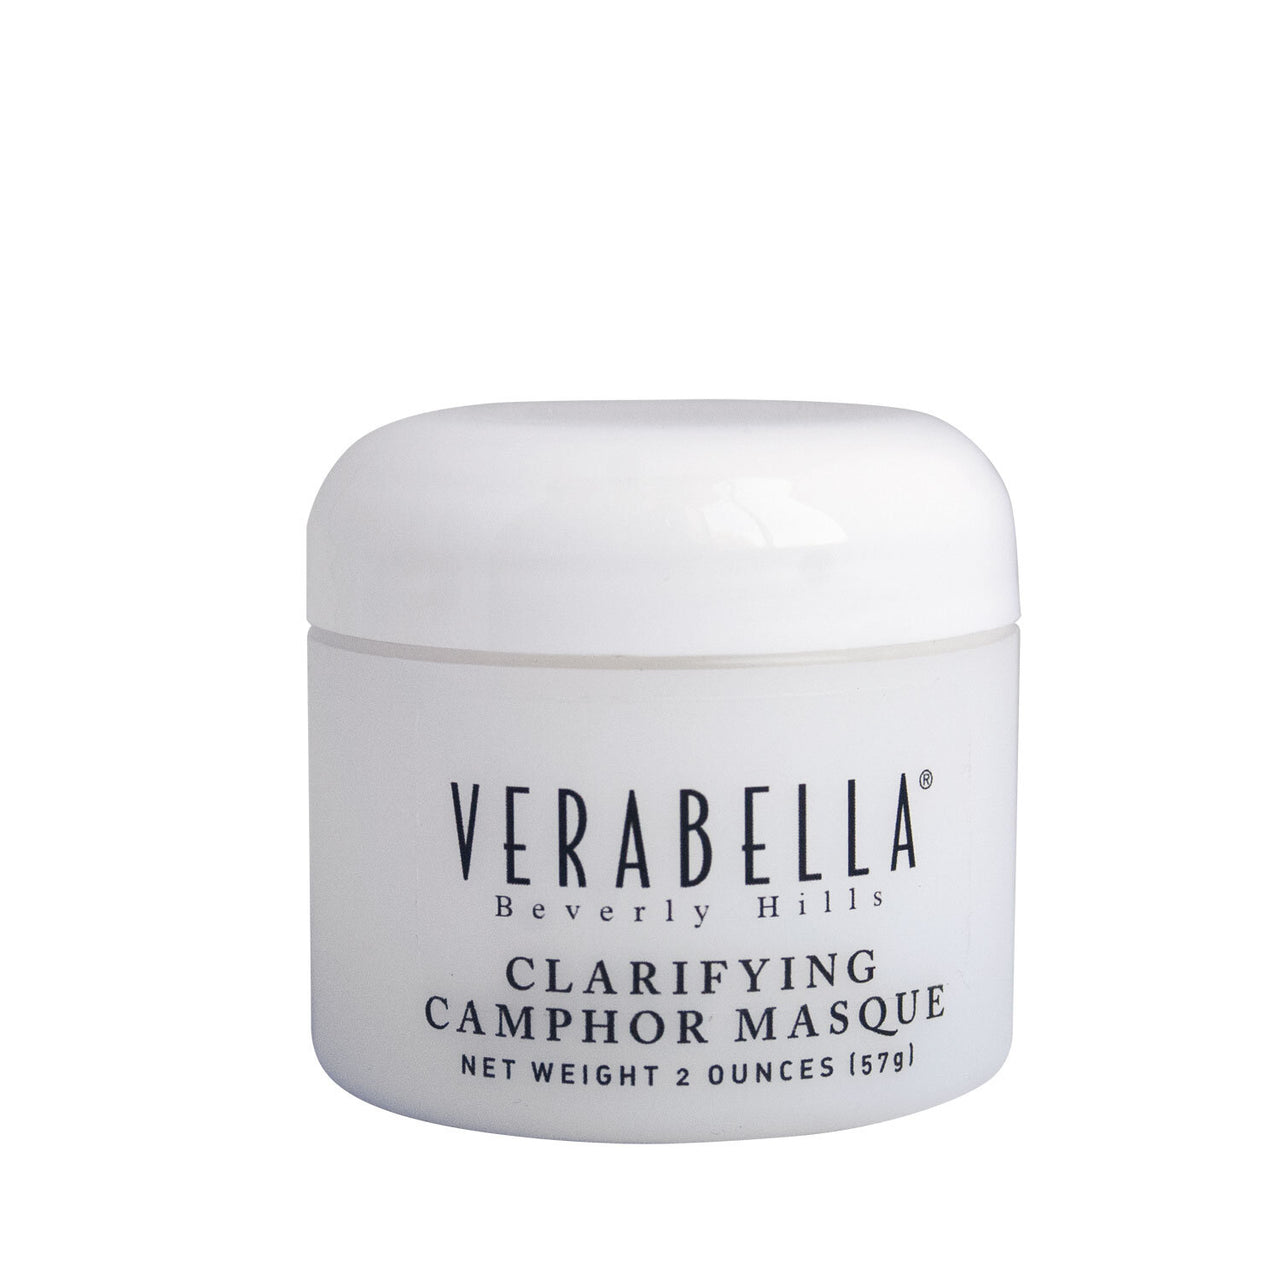 Clarifying mask for acne with camphor & witch hazel - Verabella